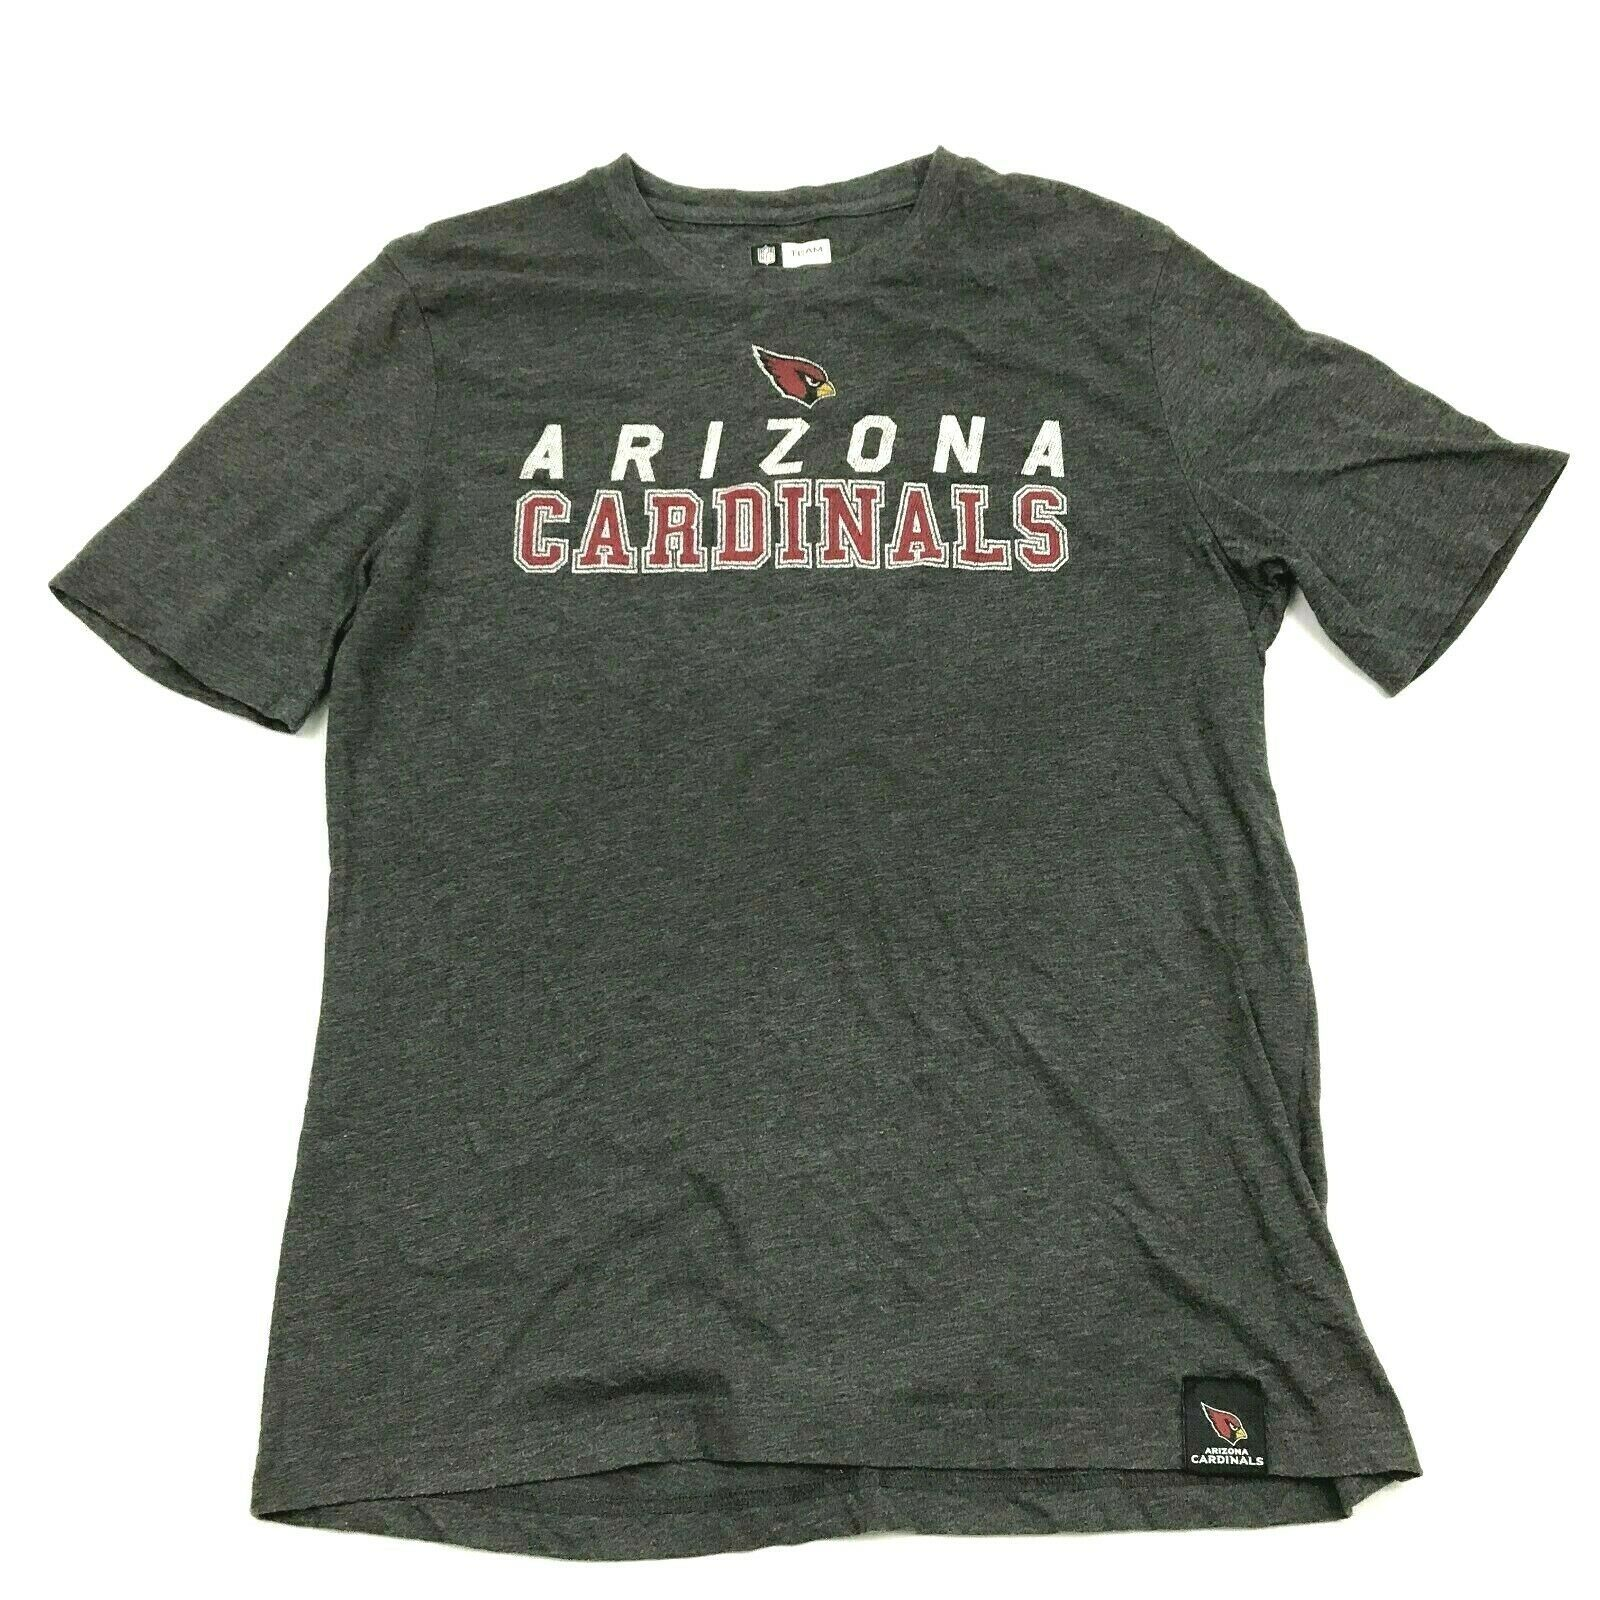 Primary image for NFL Team Apparel Arizona Cardinals Shirt Size Large Athletic Fit Gray Graphic